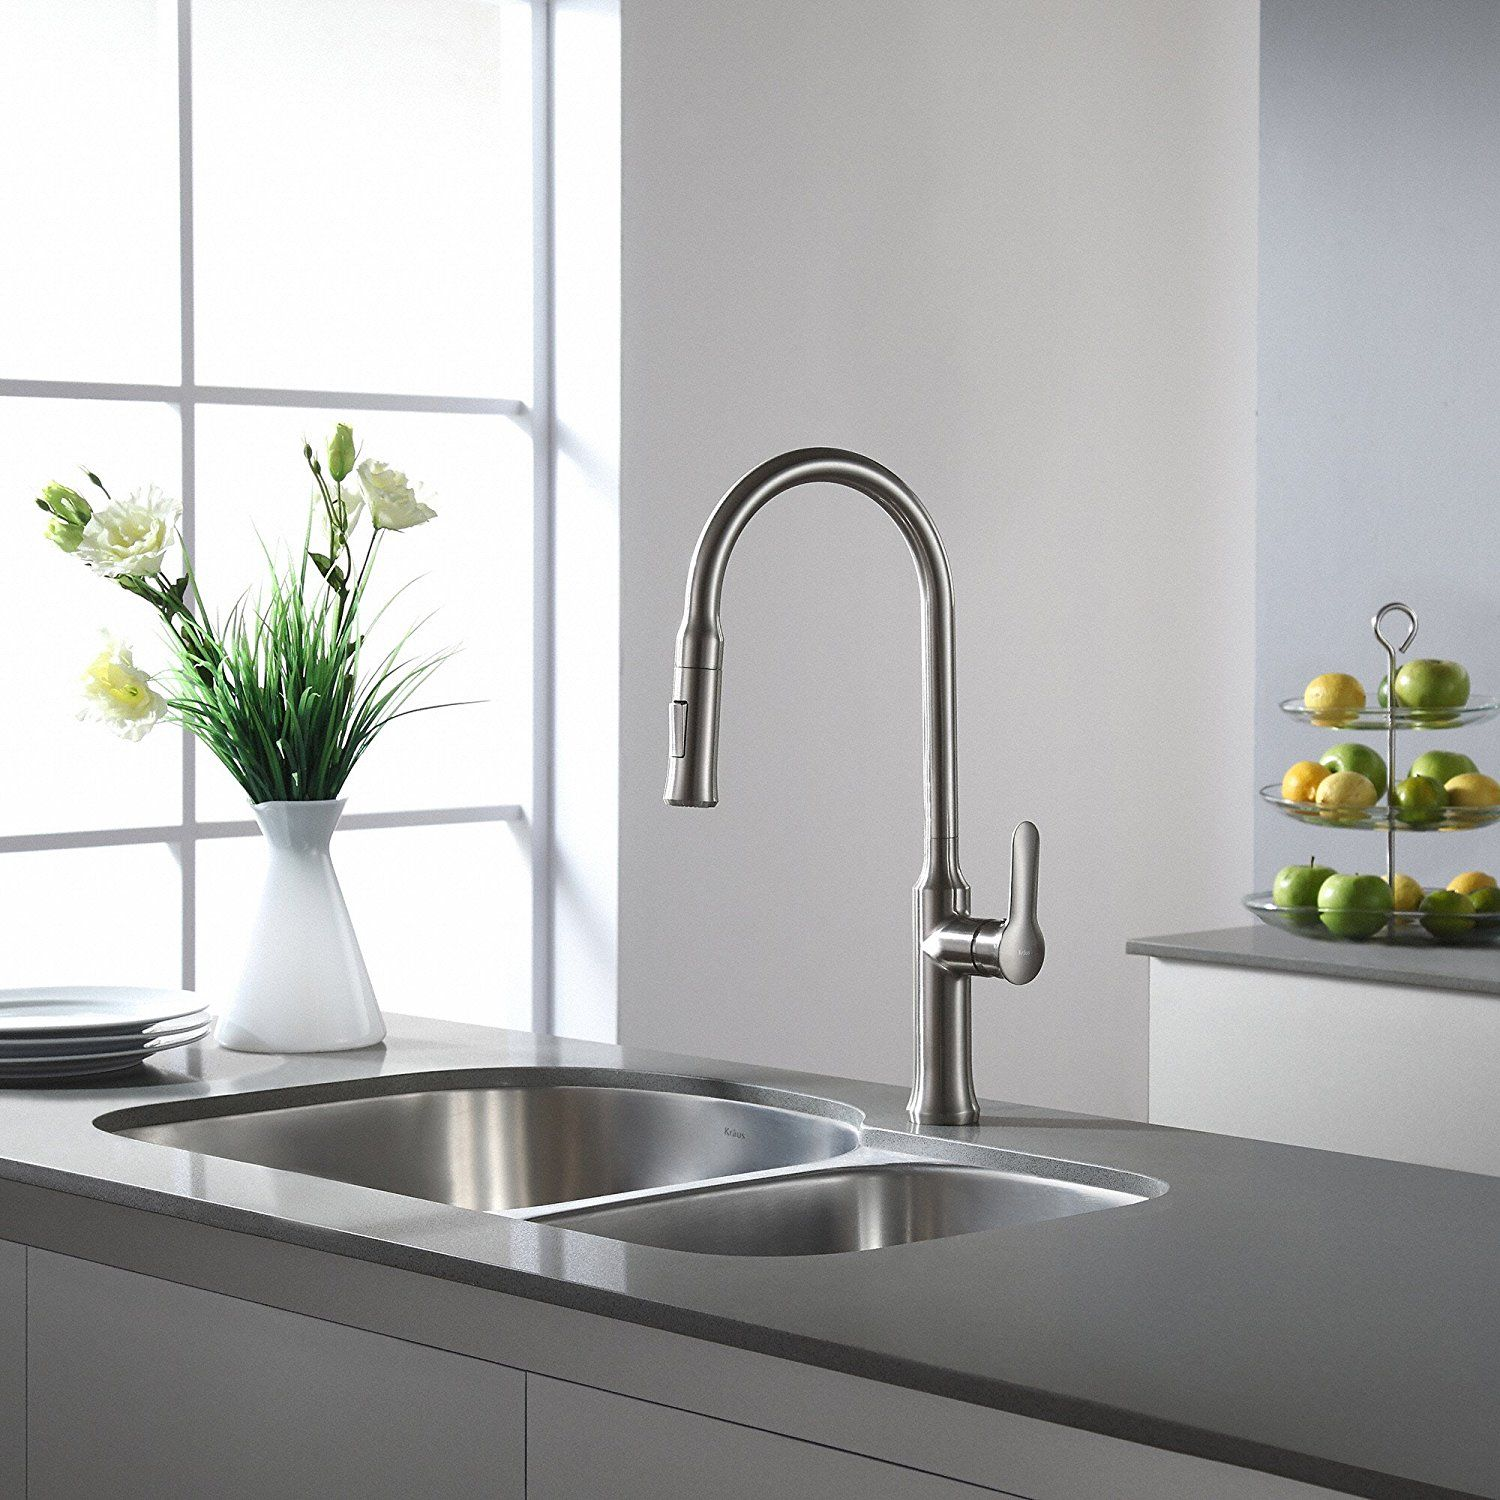 Kraus kpf 1630ss nola single lever pull down kitchen faucet stainless steel finish